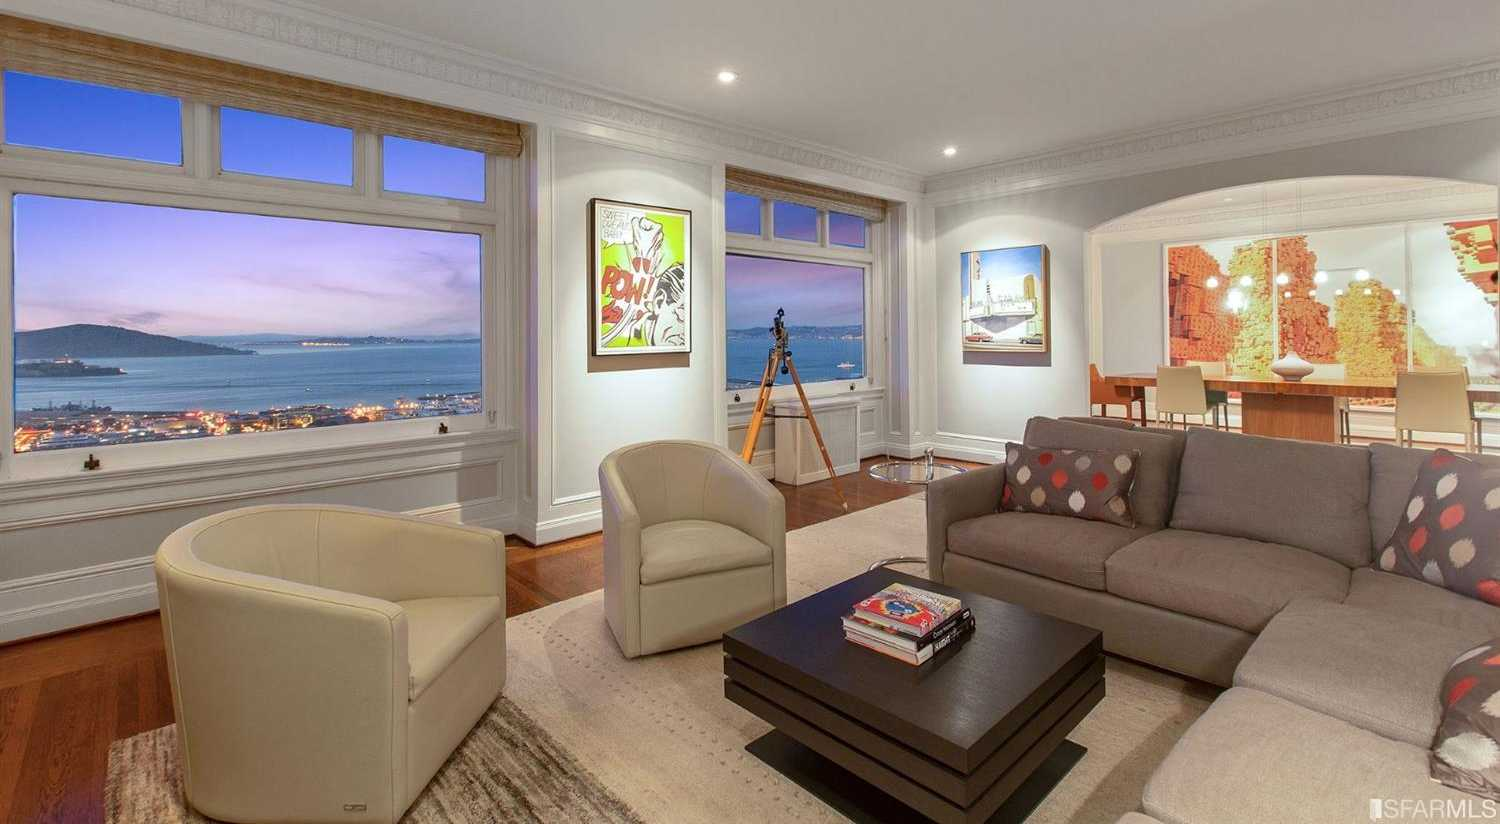 $3,995,000 - 3Br/3Ba -  for Sale in San Francisco